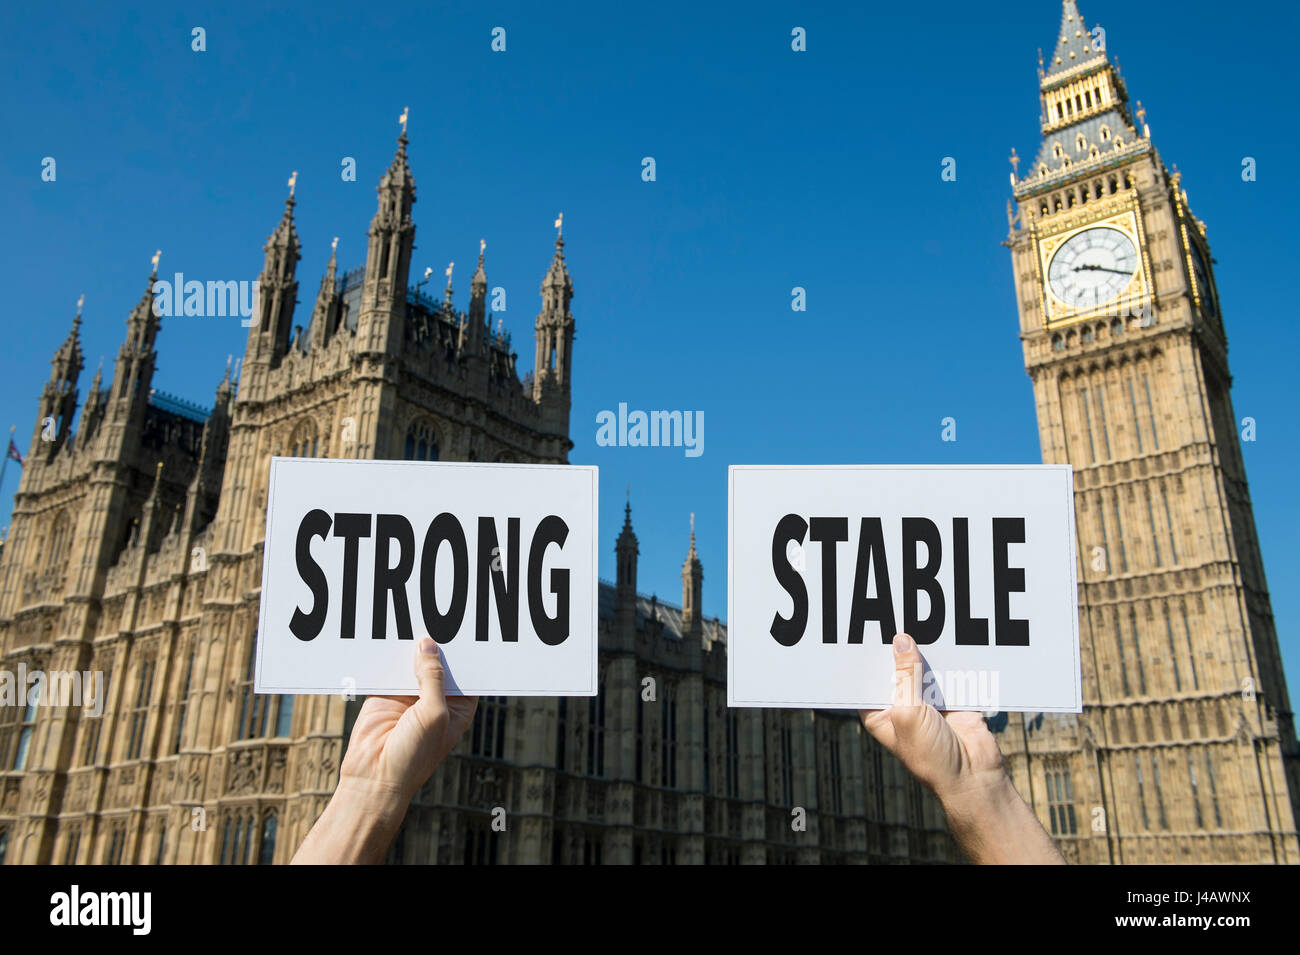 Hands holding protest signs with the message 'Strong, Stable' referring to the United Kingdom and its relationship - Stock Image